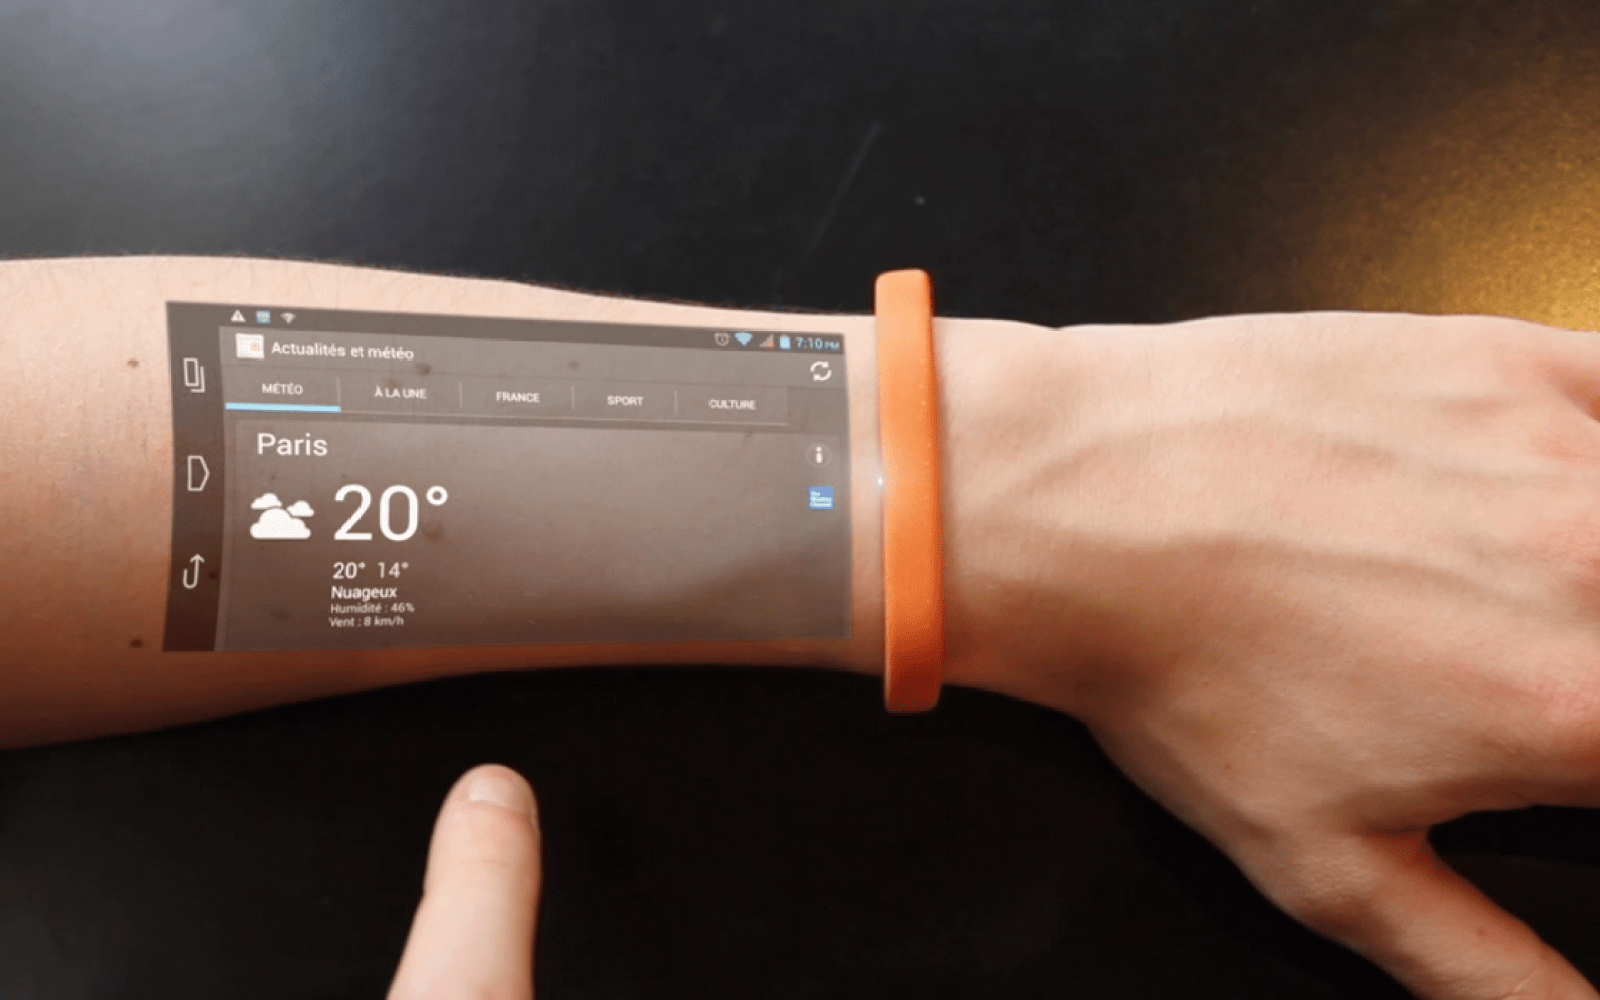 The Cicret Bracelet Puts A Smartphone Display On Your Arm With Full